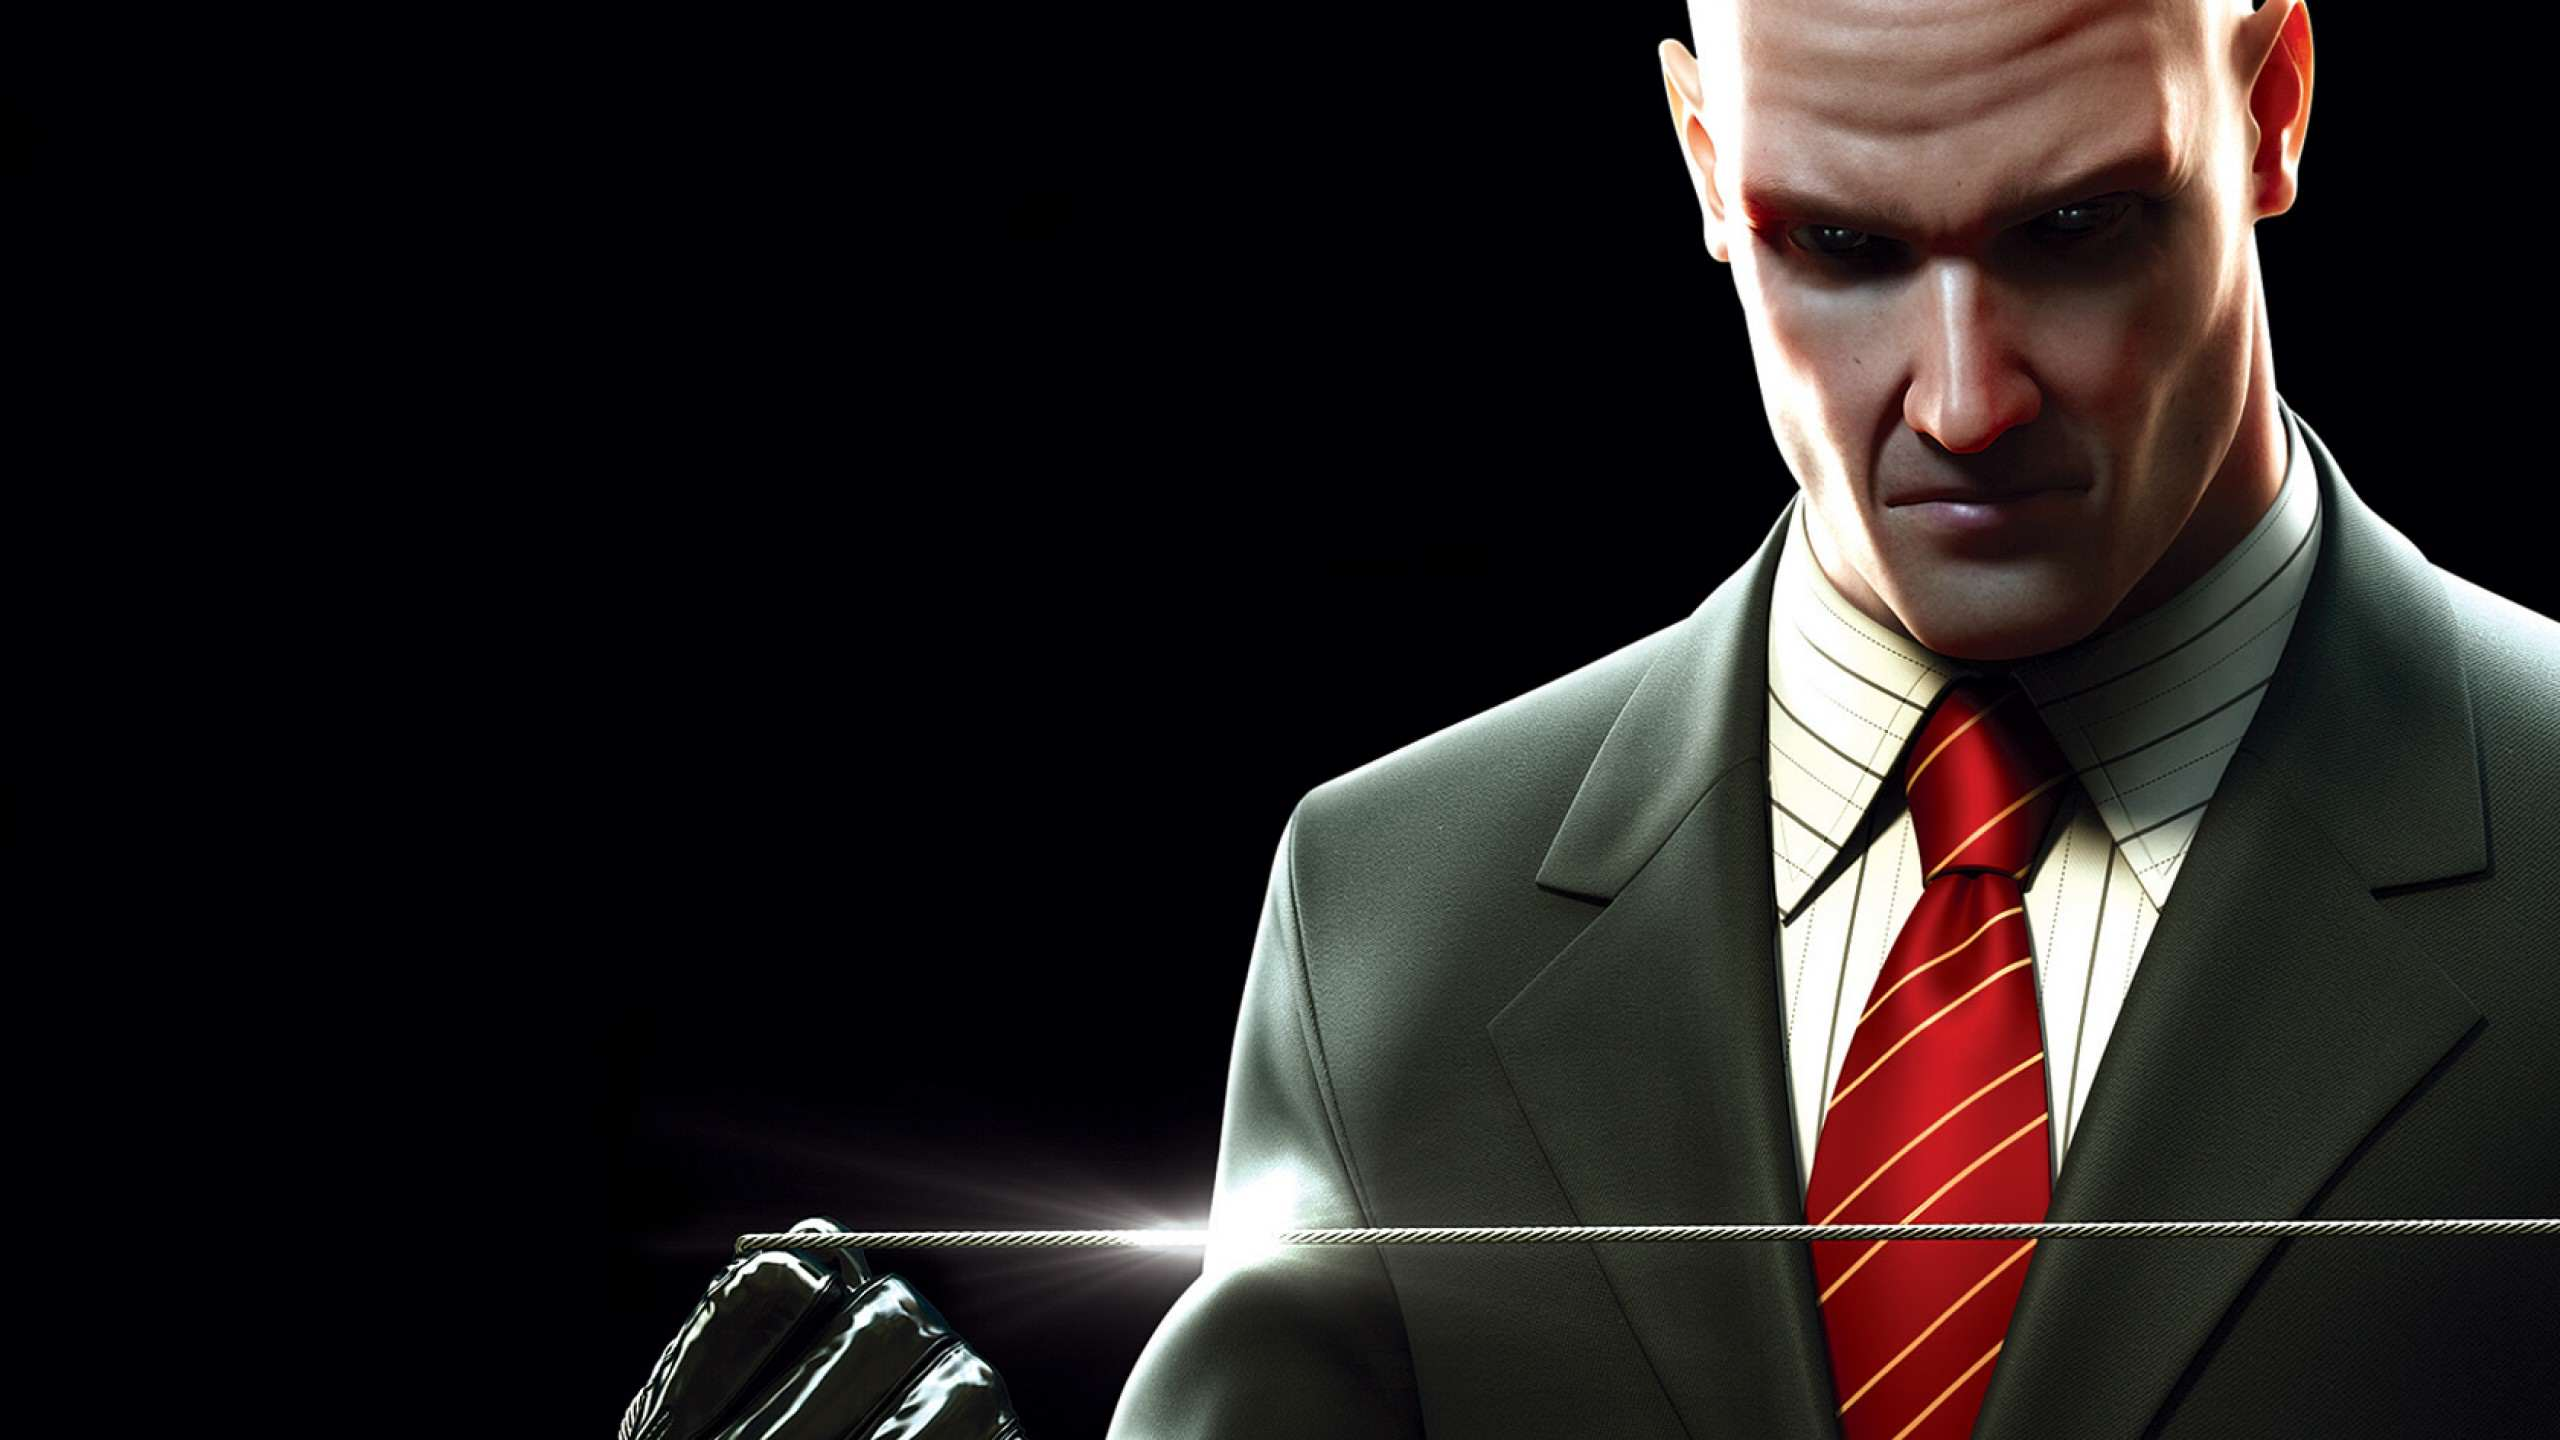 Ten Of The Deadliest Videogame Assassins 4654201 agent471